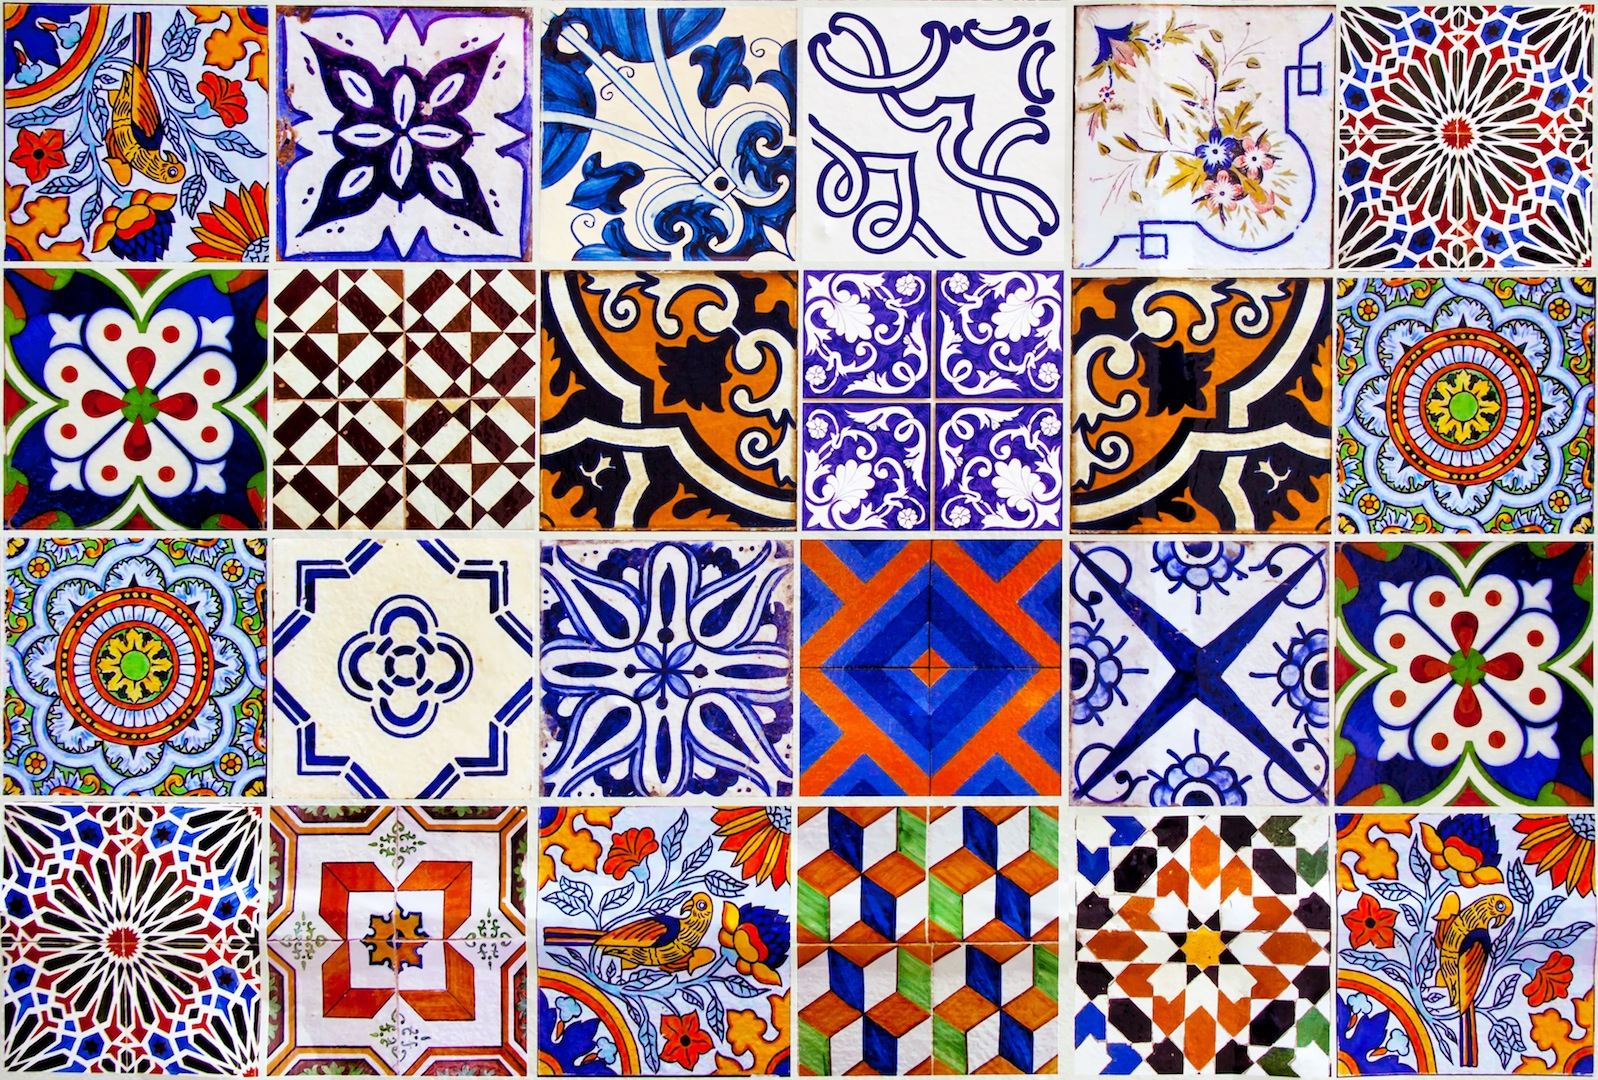 Les azulejos fiert architecturale de lisbonne unique for Tipos de azulejos